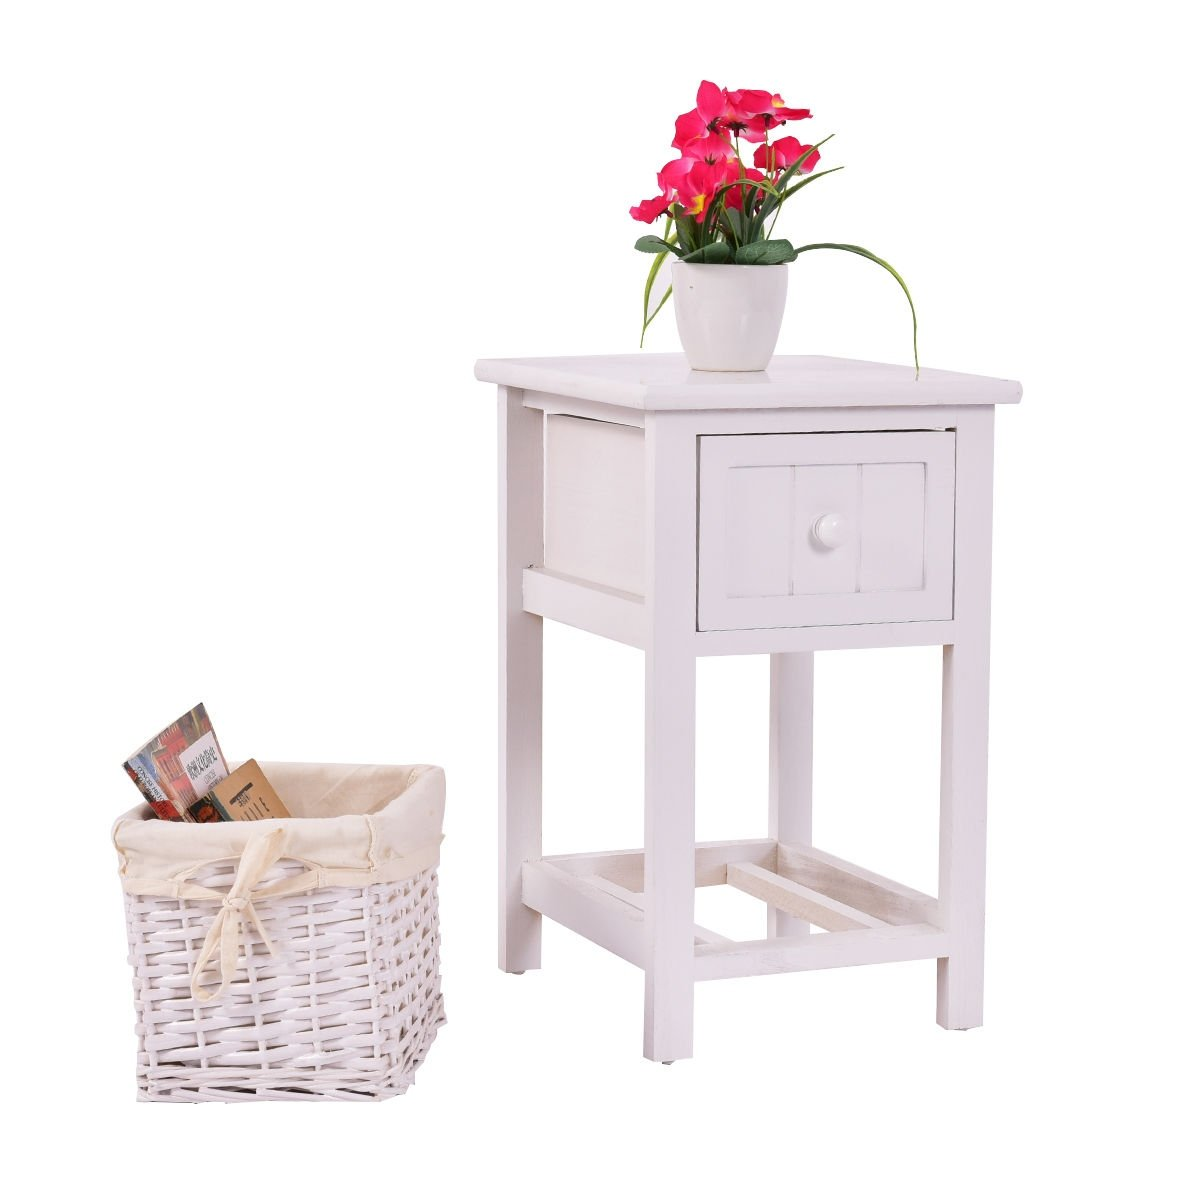 way night stand layer drawer bedside end table two bedroom tables organizer wood basket kitchen dining second hand lamp mainstays furniture assembly instructions what color throw